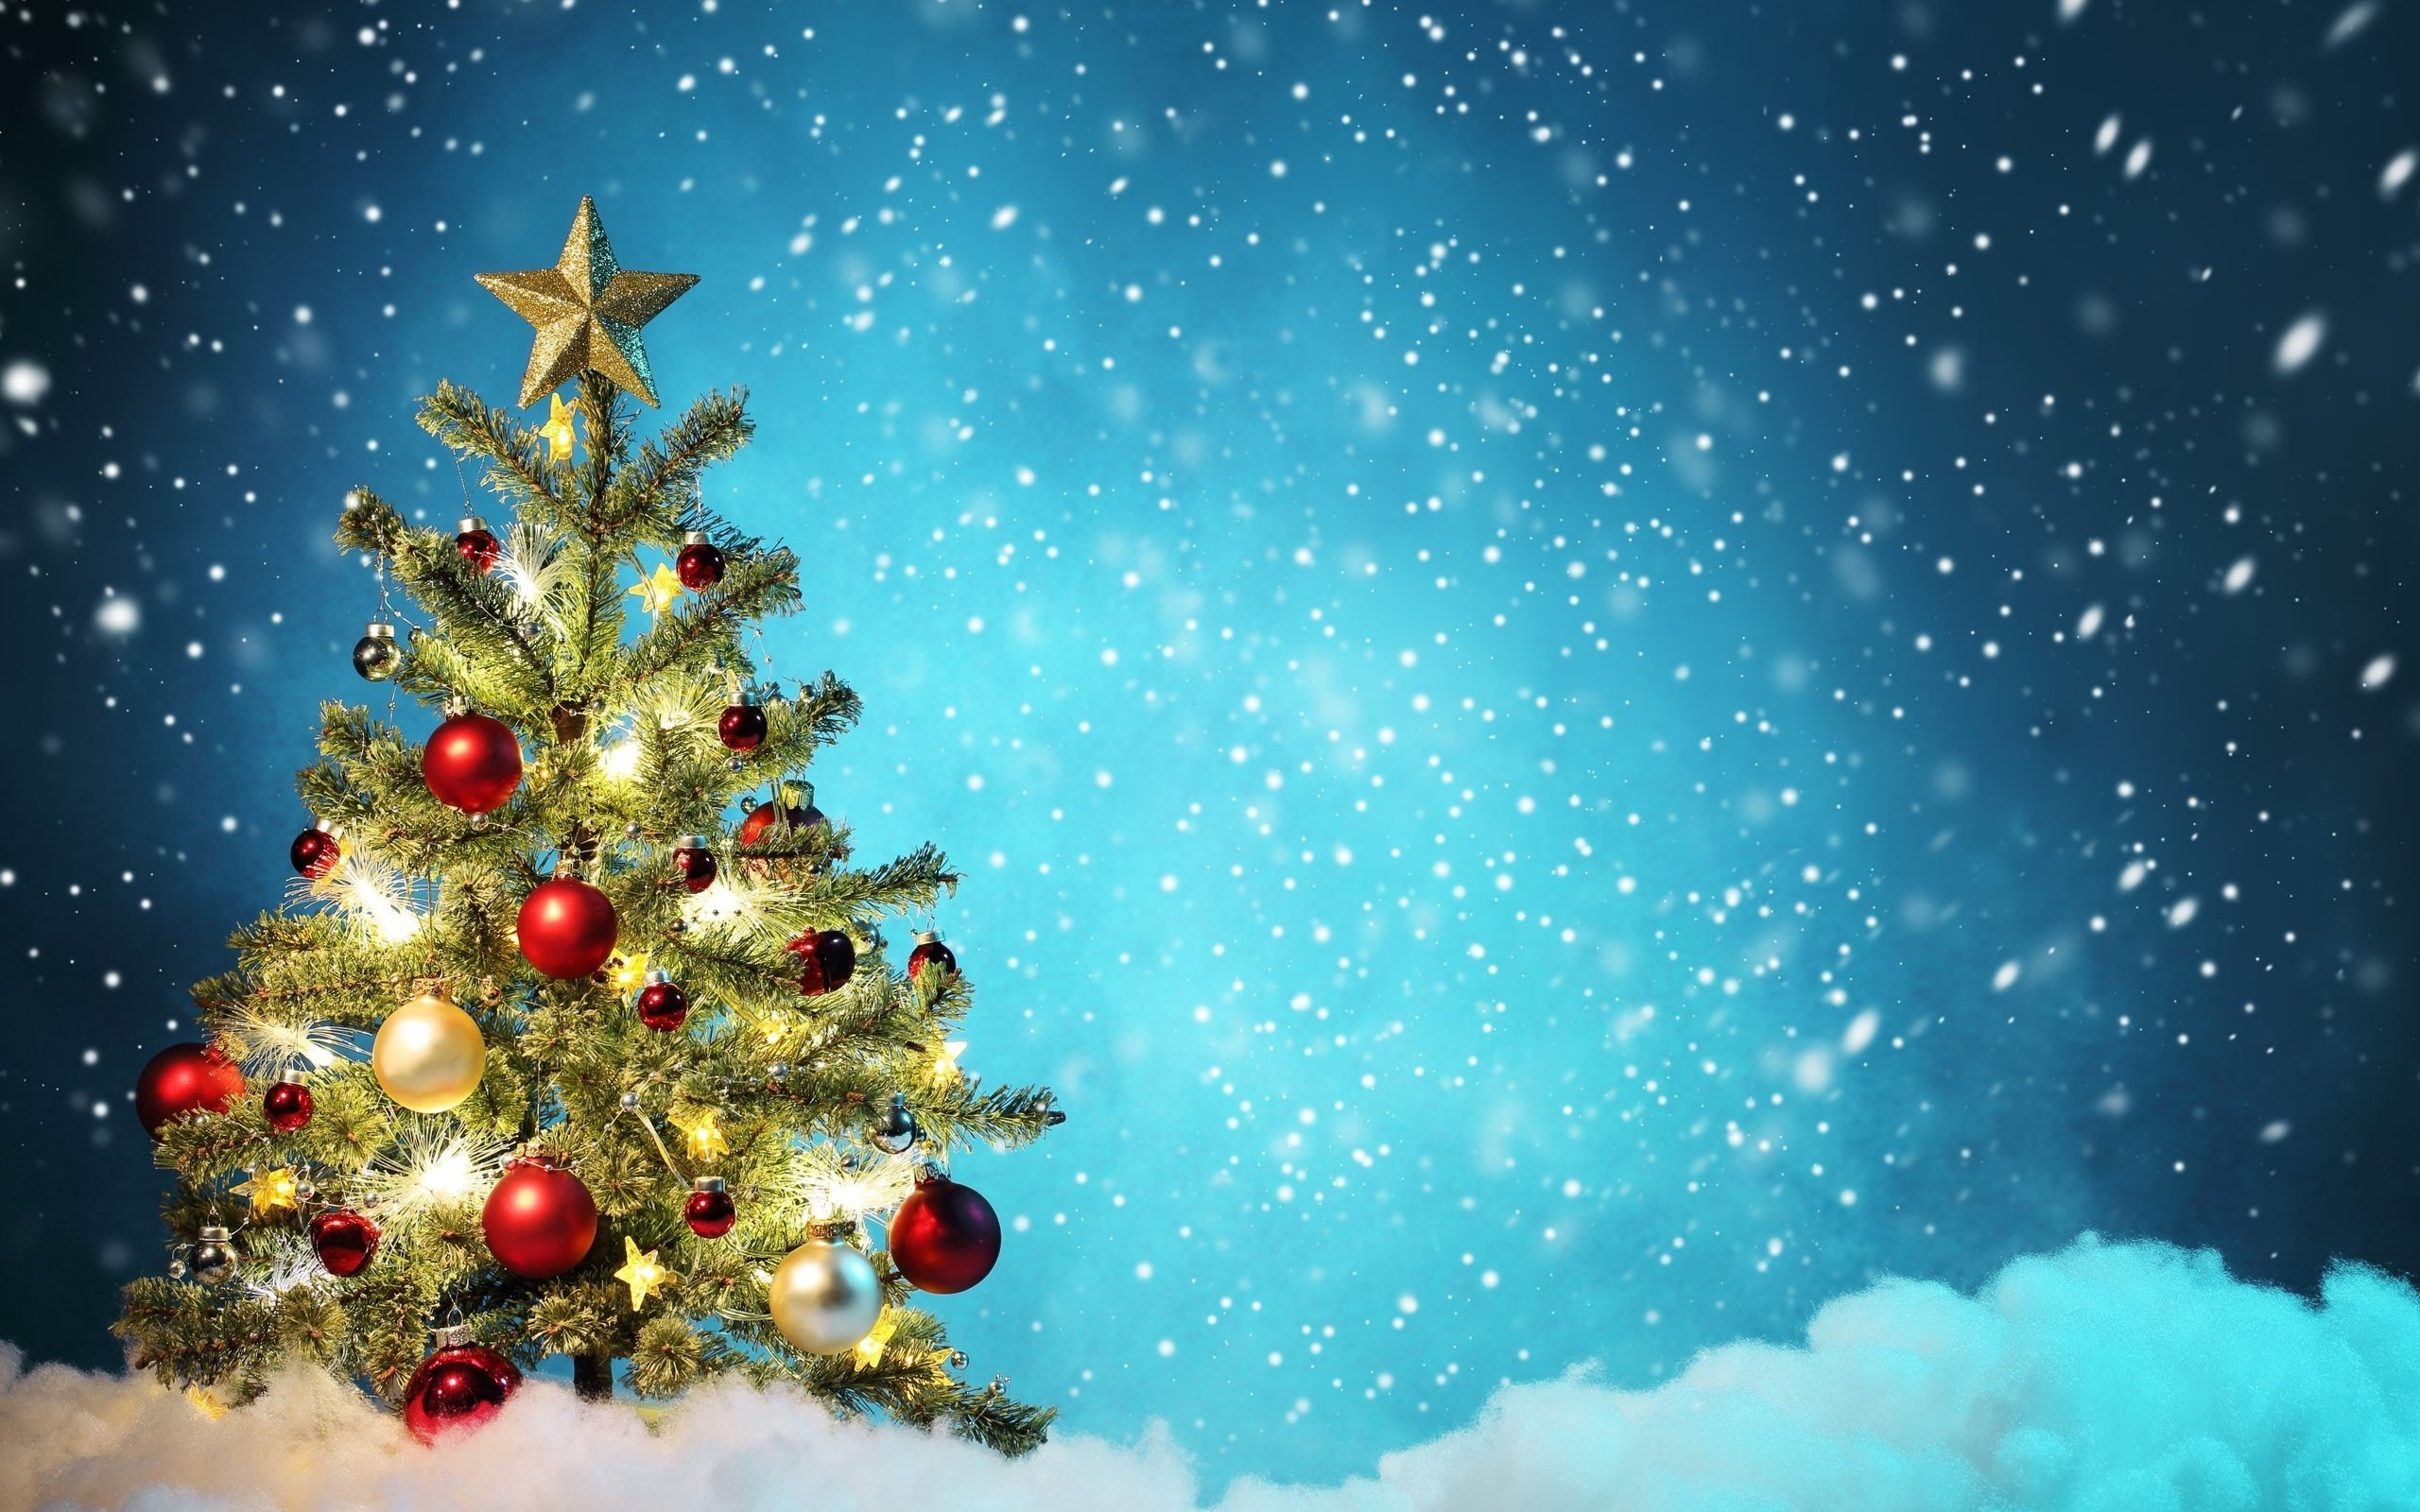 Beautiful Christmas Tree Wallpaper for Desktop 2560x1600